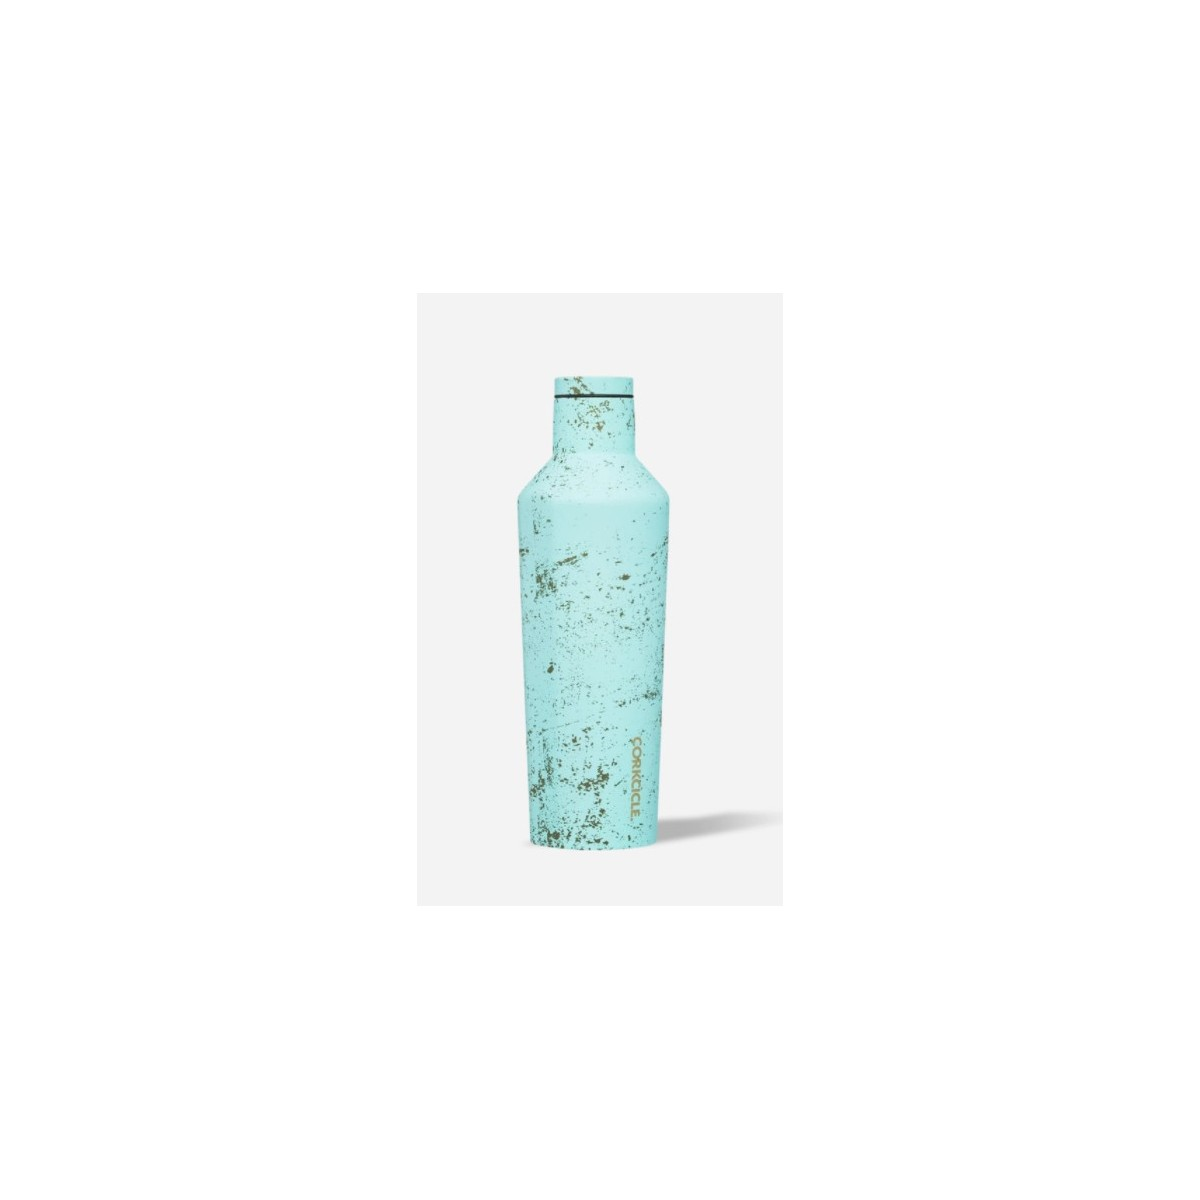 Borraccia termica - Bali blue 16oz